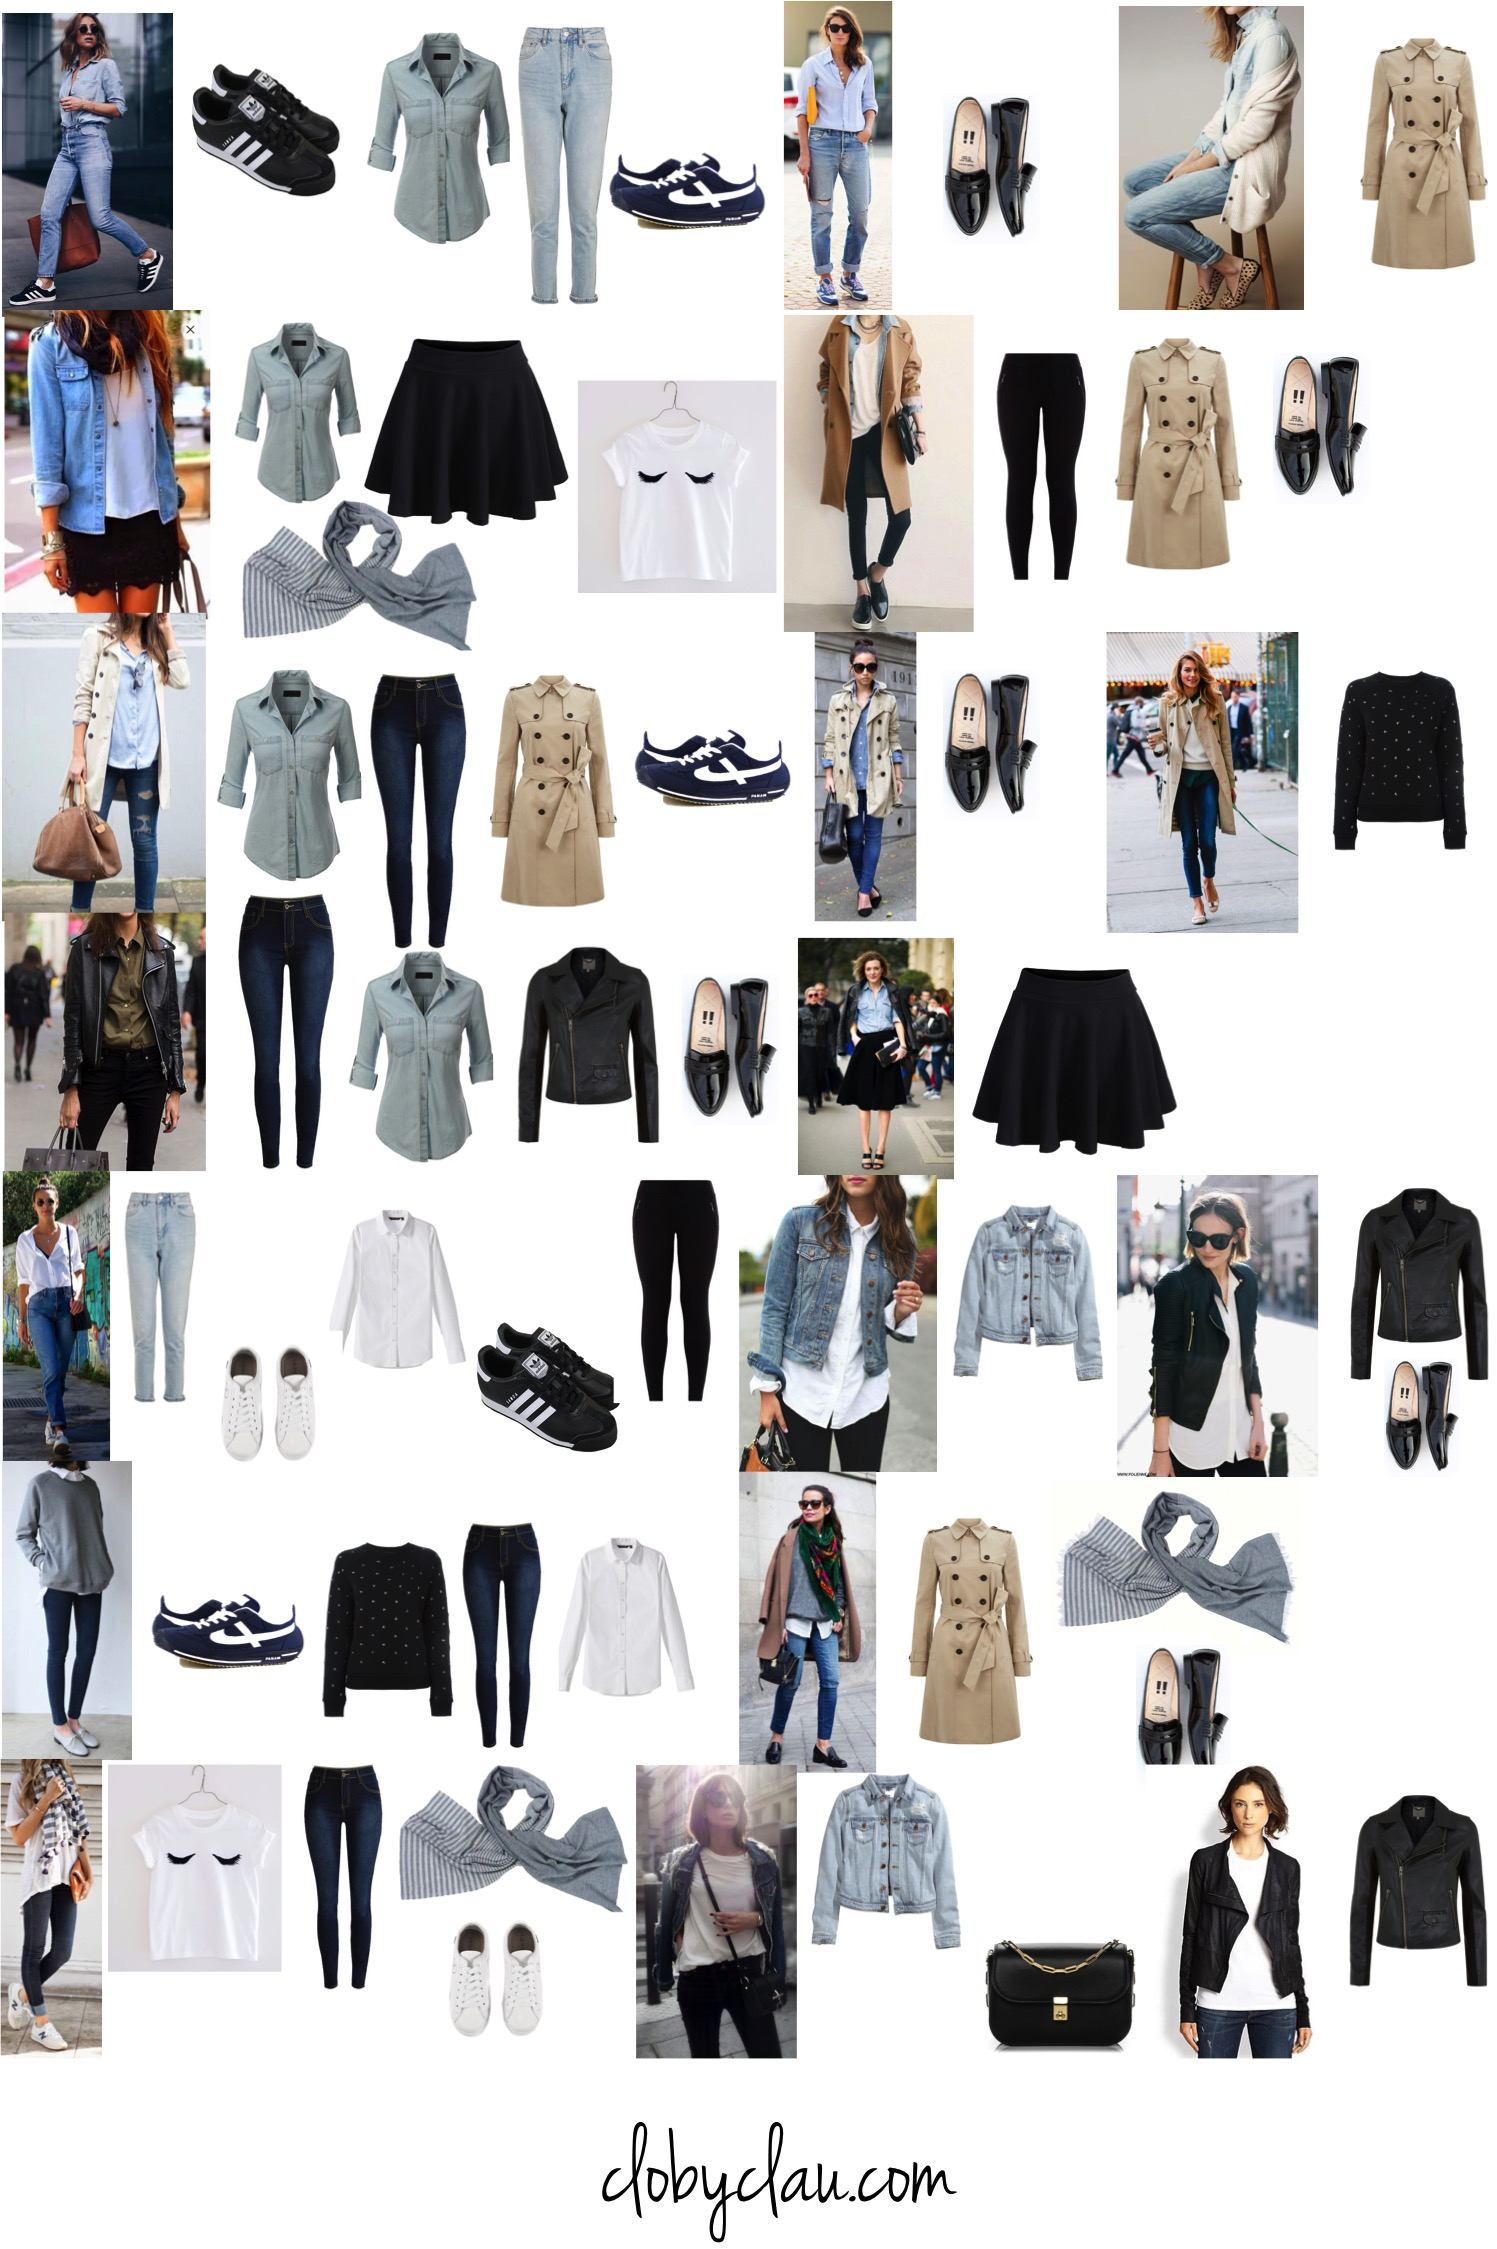 ideas-outfits-proyecto333.jpg